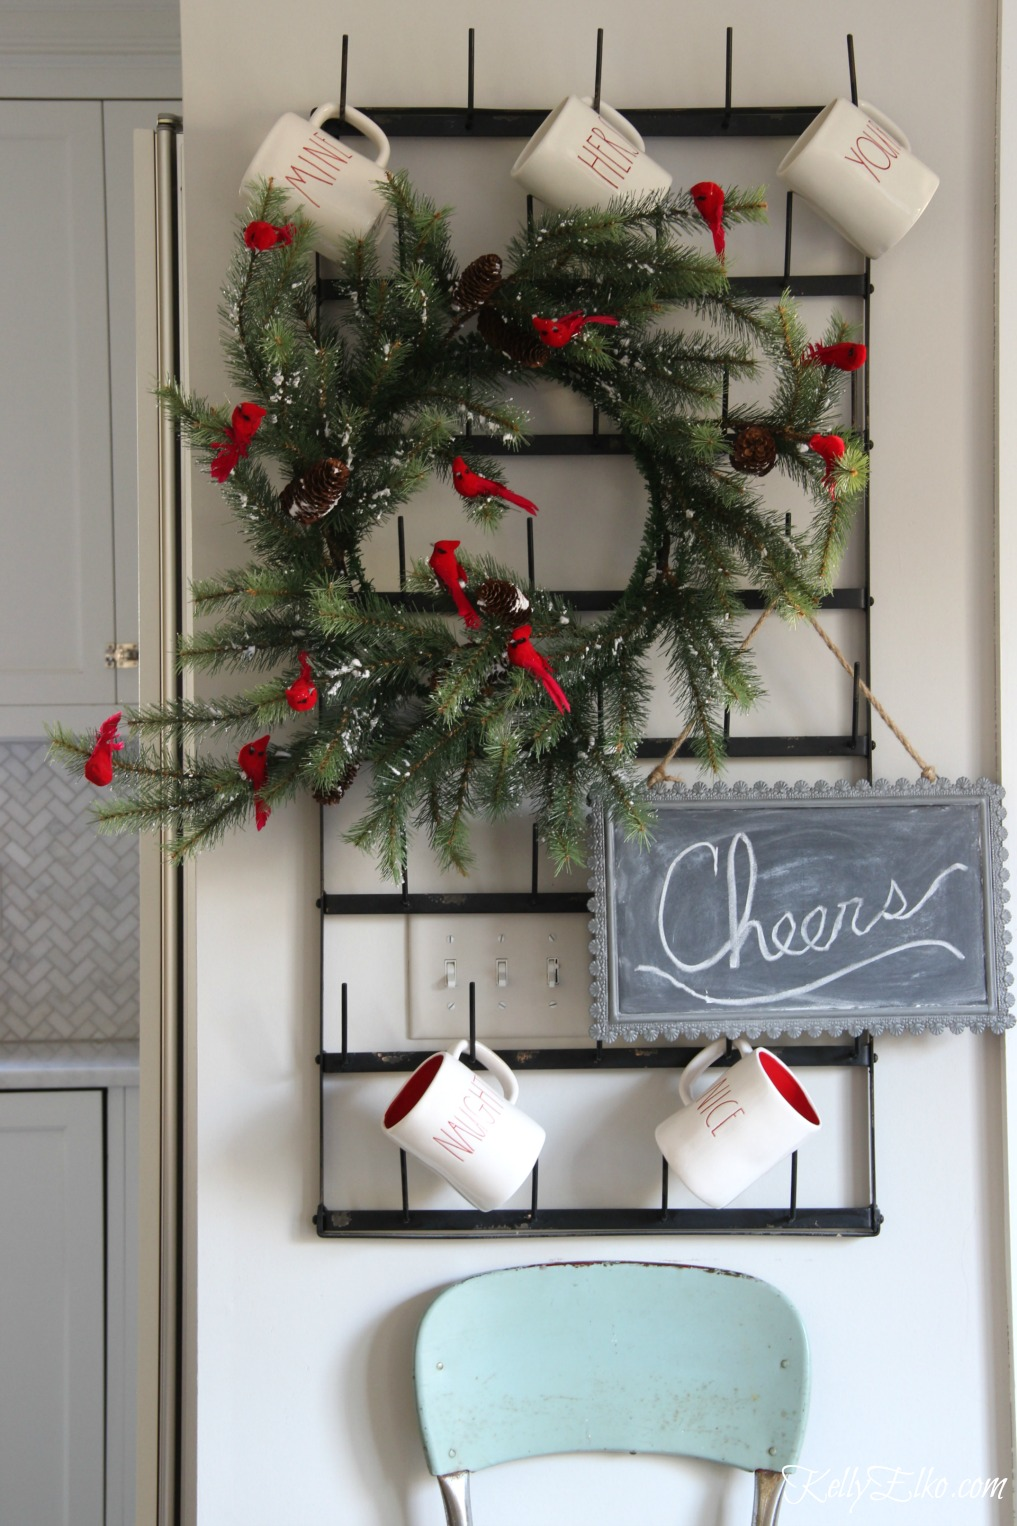 Christmas Kitchen - love this wall mounted bottle drying rack for displaying mugs and a festive wreath kellyelko.com